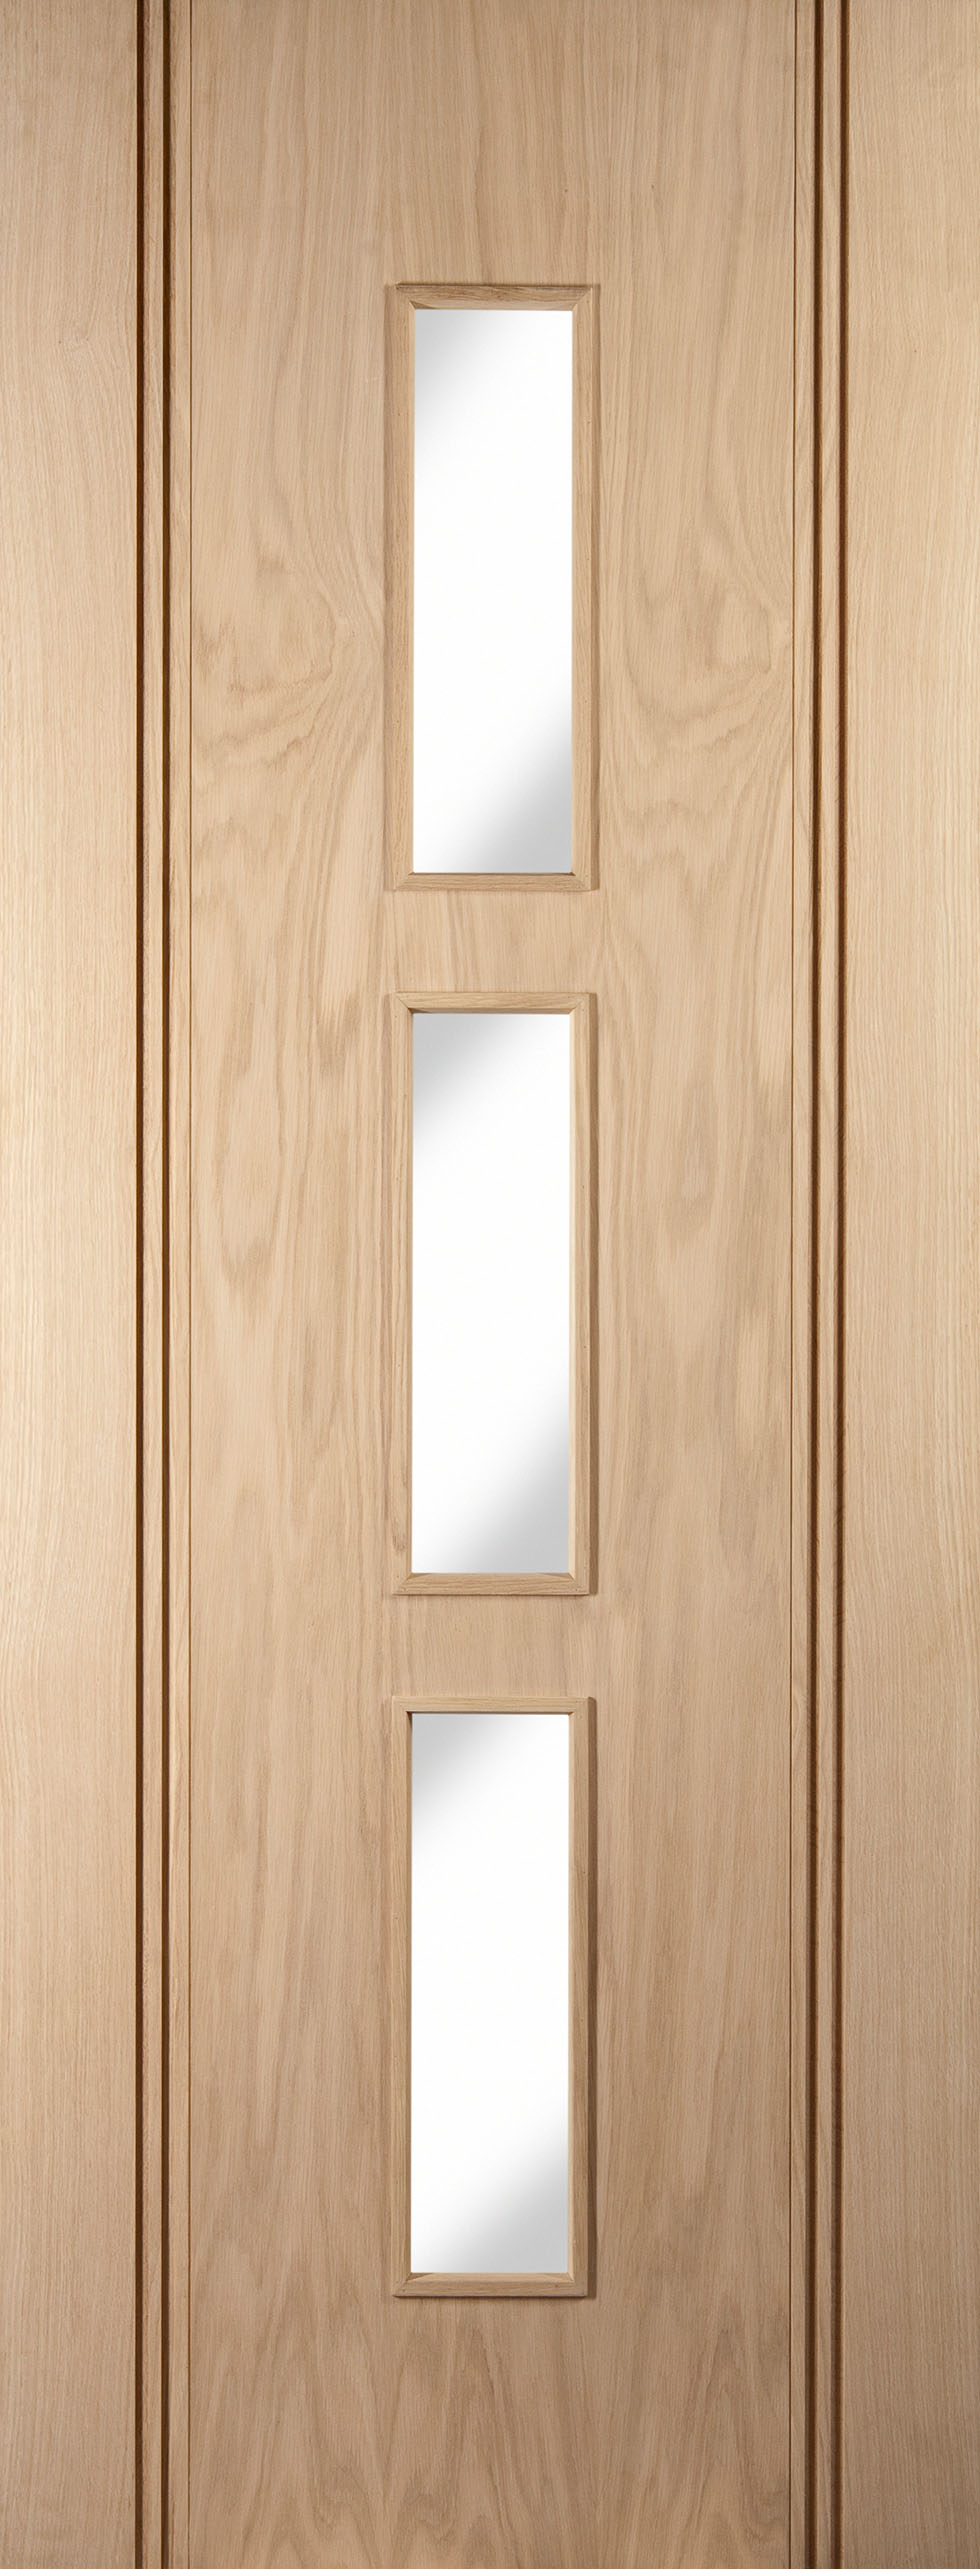 Made From American White Oak Veneer With Stylish Vertical Grooves And Glazed Panels The Stanton Clear Door Jeld Wen Suits Both Modern Older